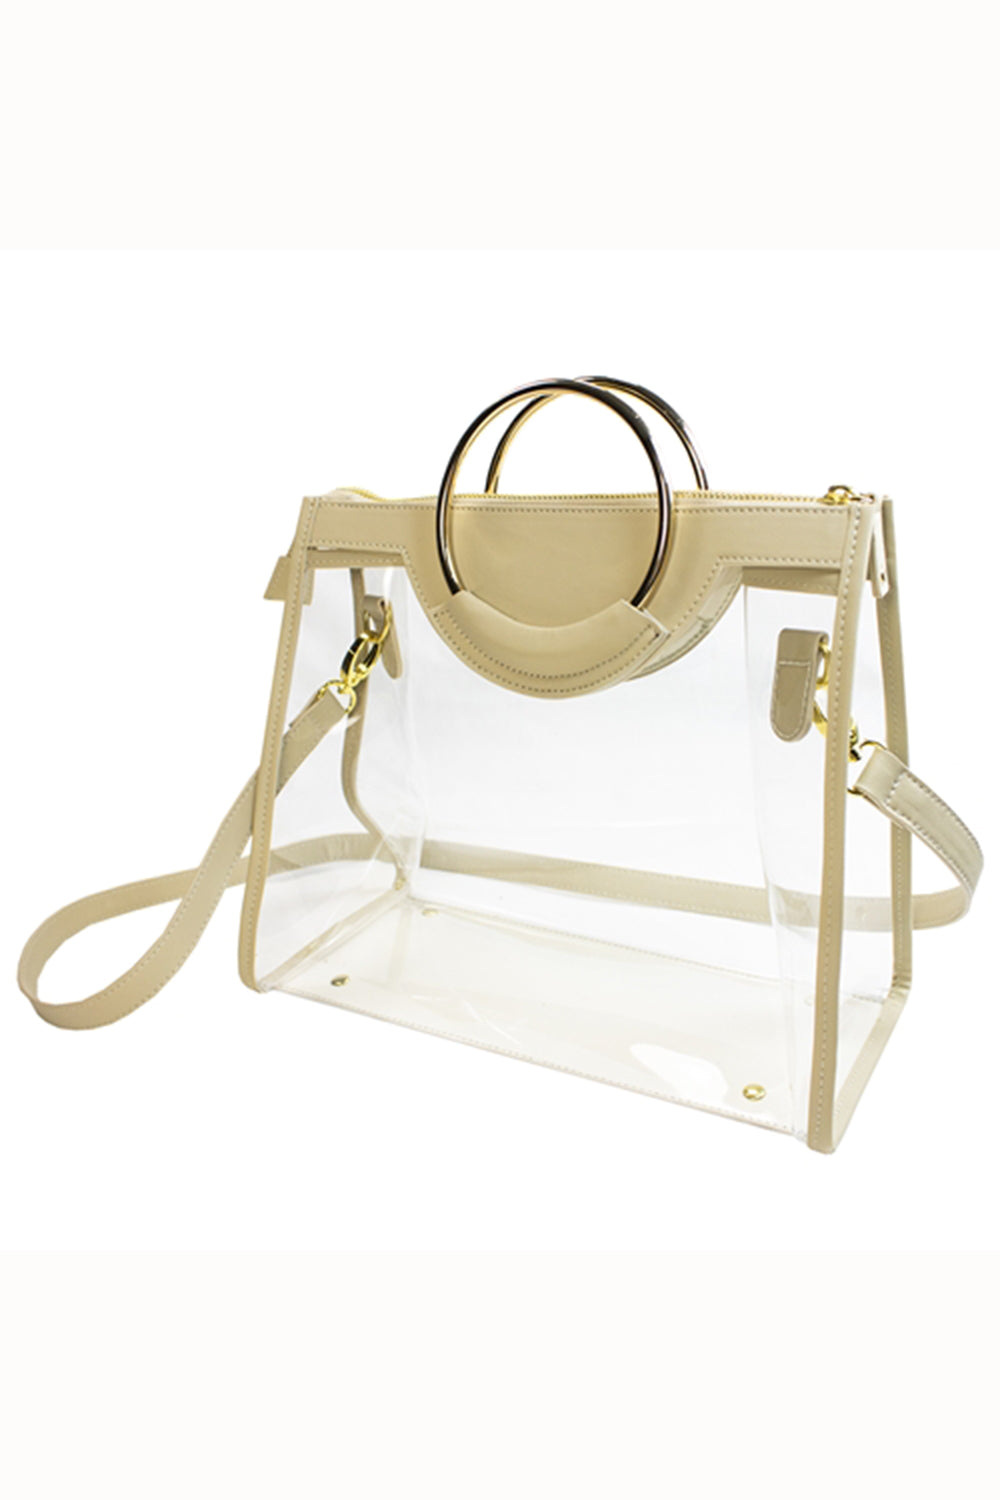 Clear Classic Ring Tote - Tan